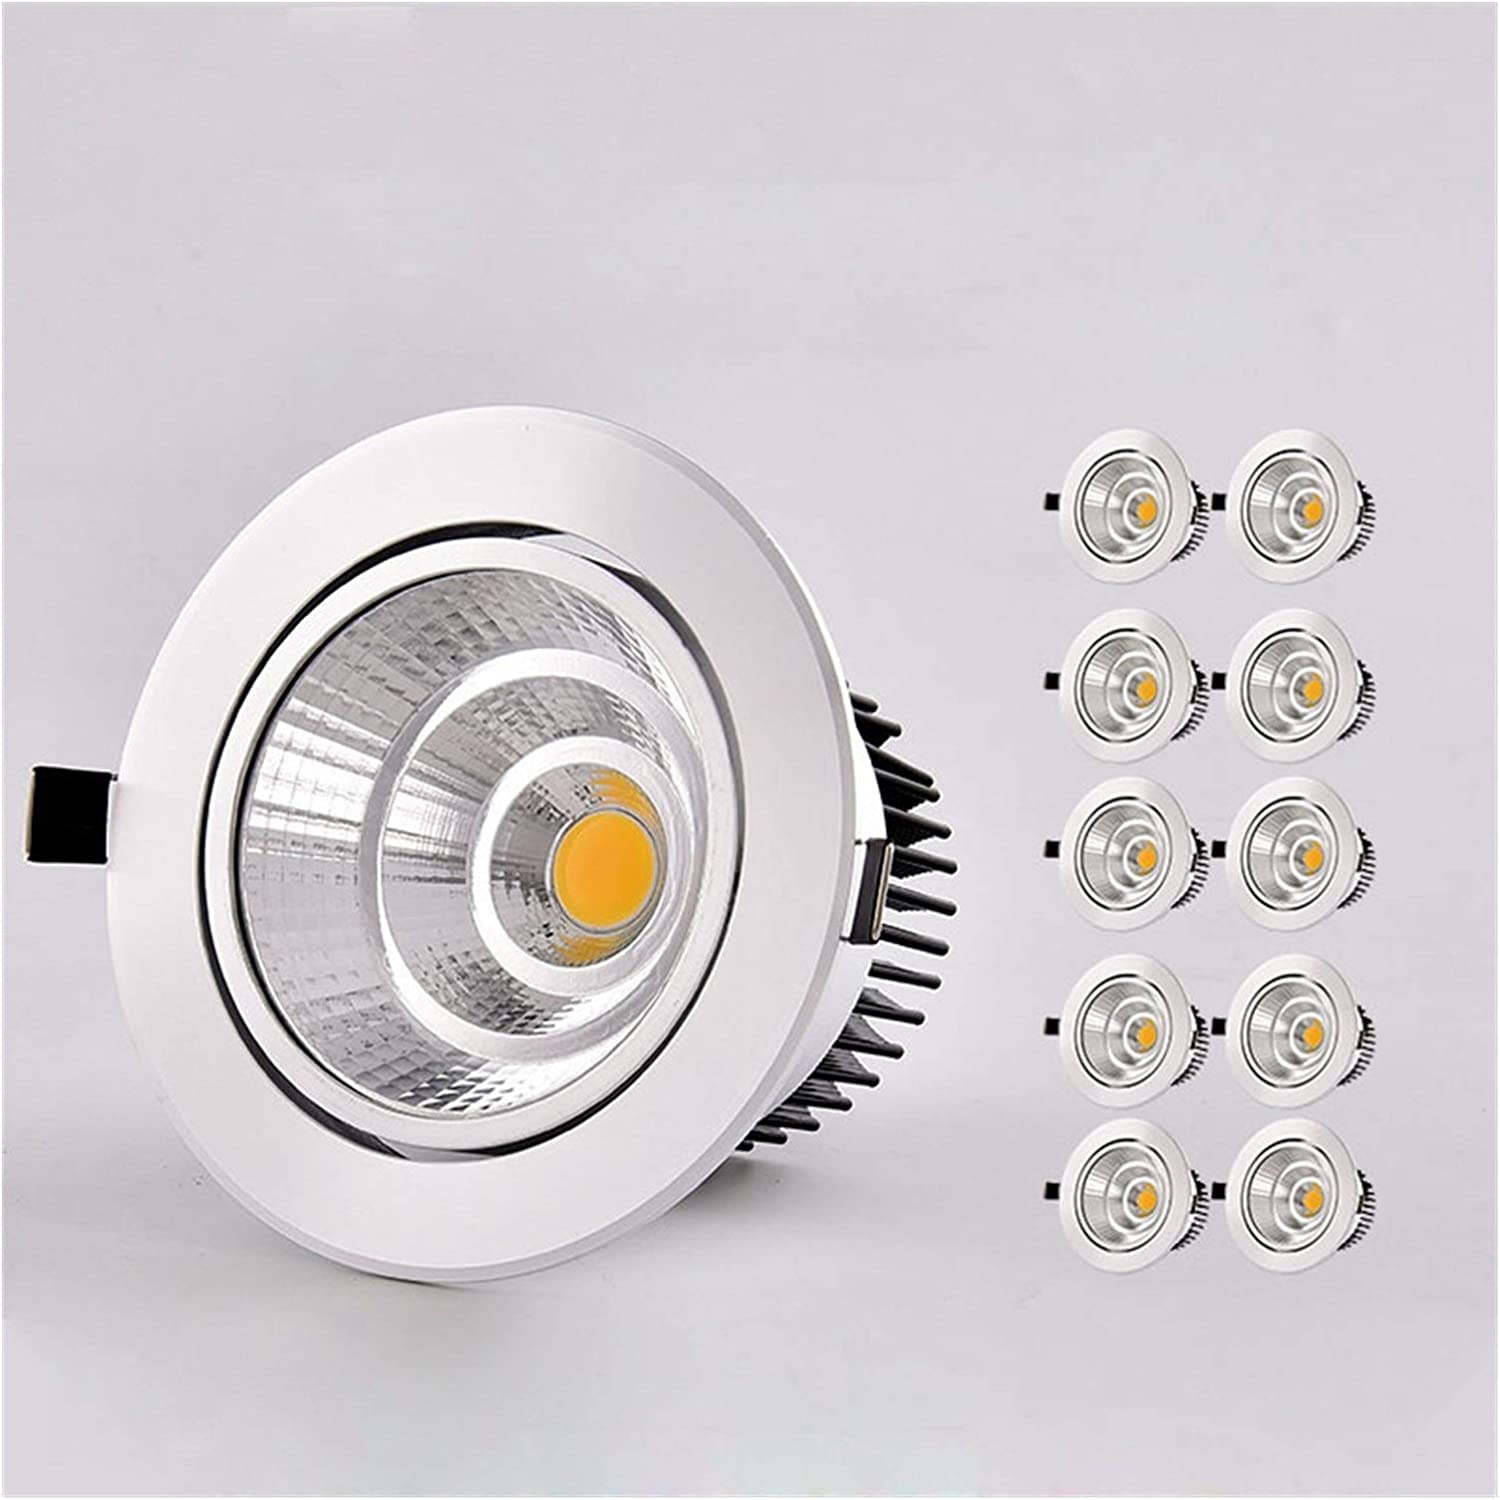 Body Color : White, Emitting Color : Cold White Tlwangl Downlight 10pcs//Lots LED Downlight Round Recessed Lamp 5W 7W 9W 12W 15W 20W 30W LED Dimmable Ceiling Lamp Spot Light for Home Illumination